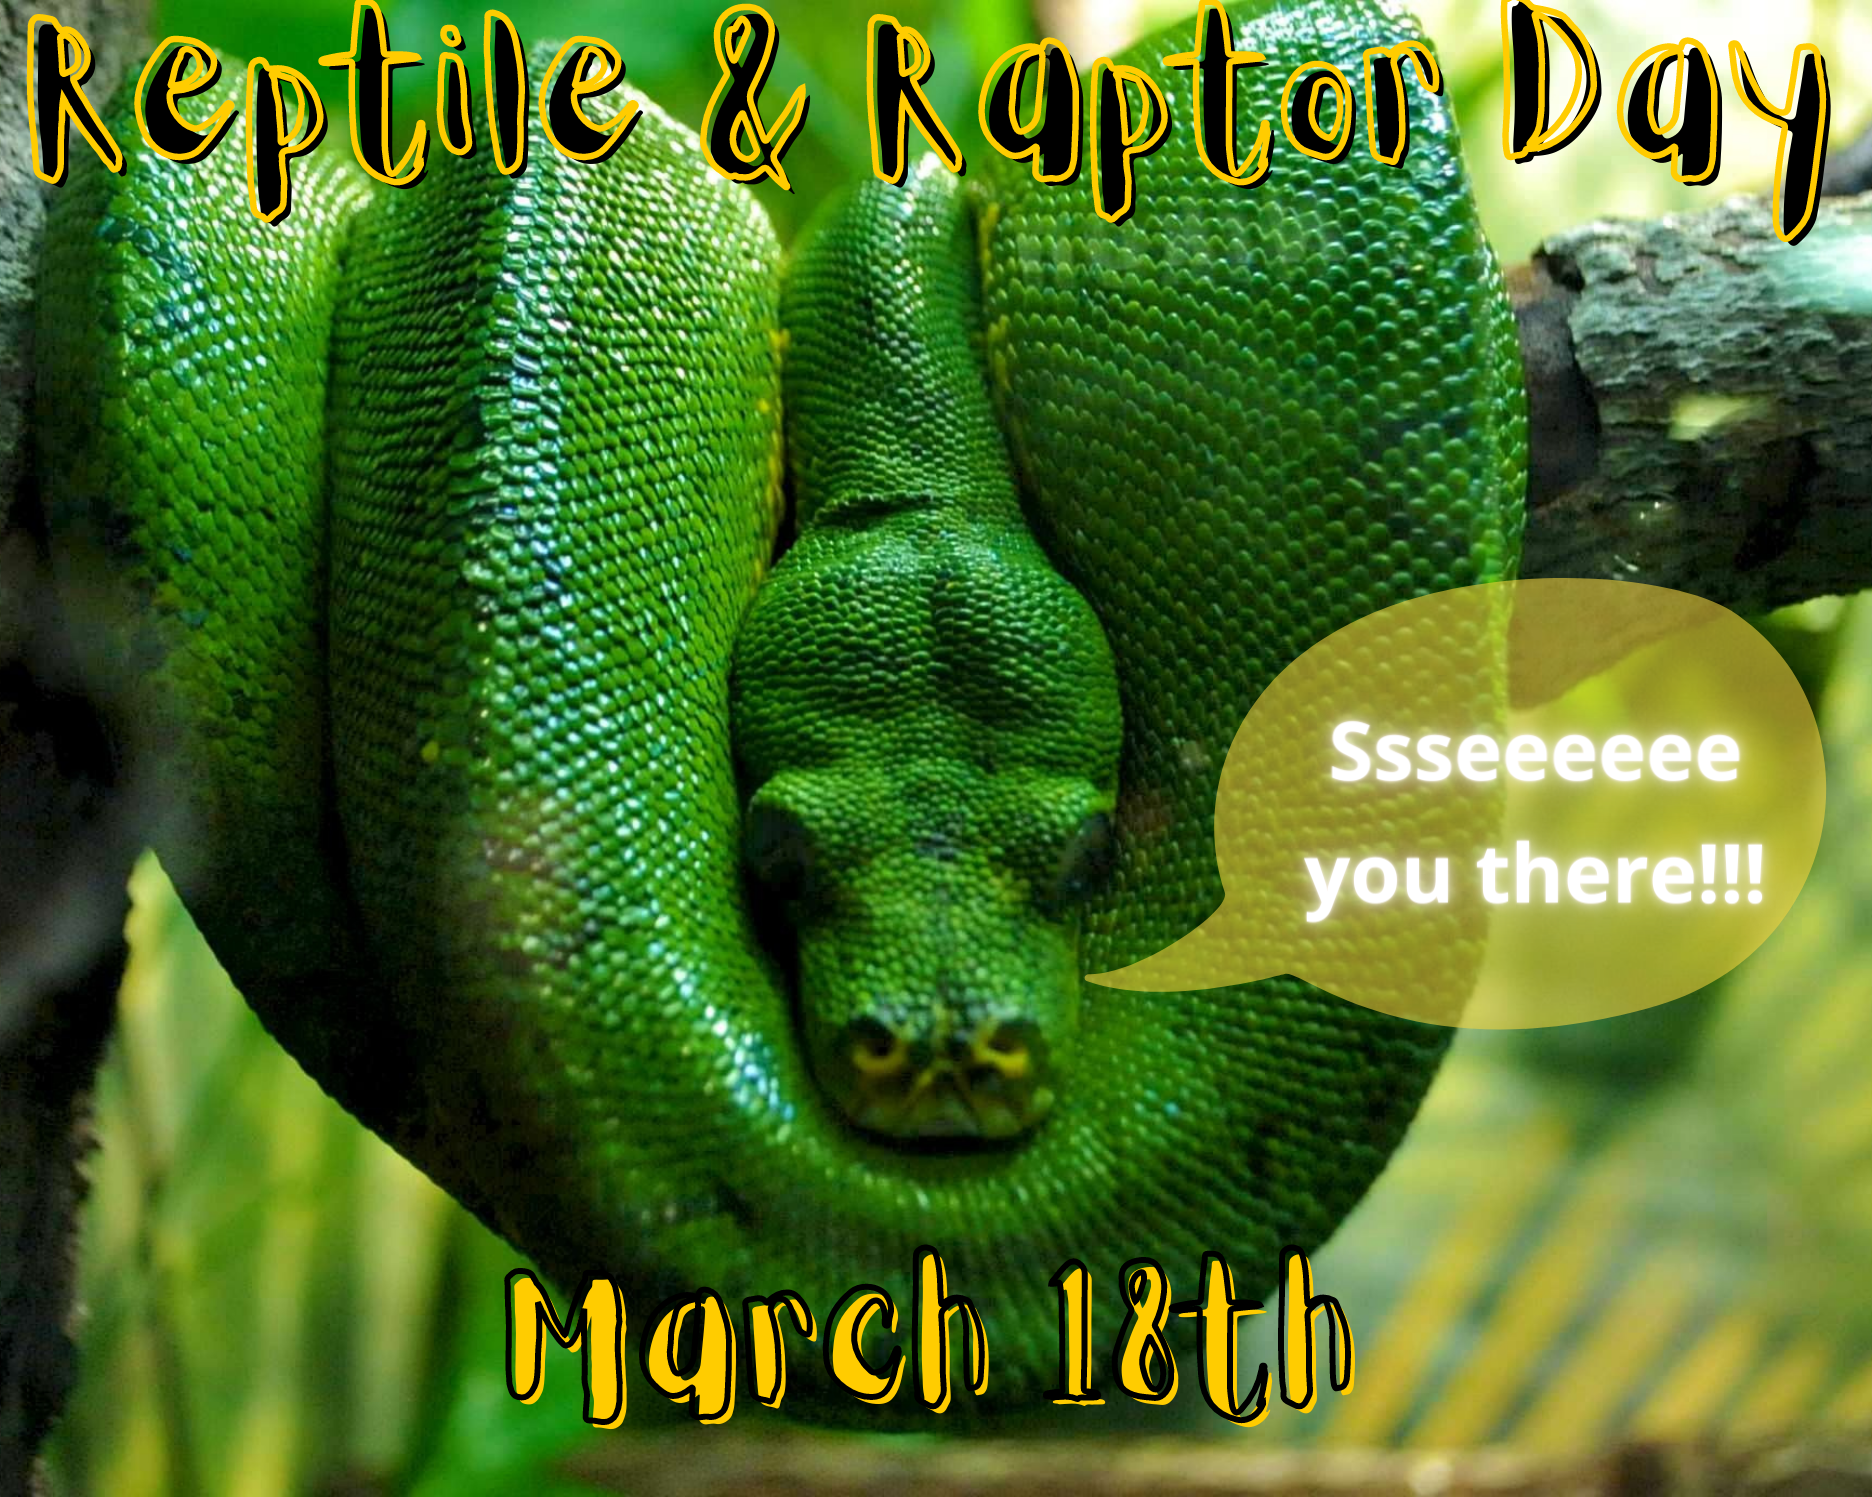 Reptile & Raptor Show Day 2021